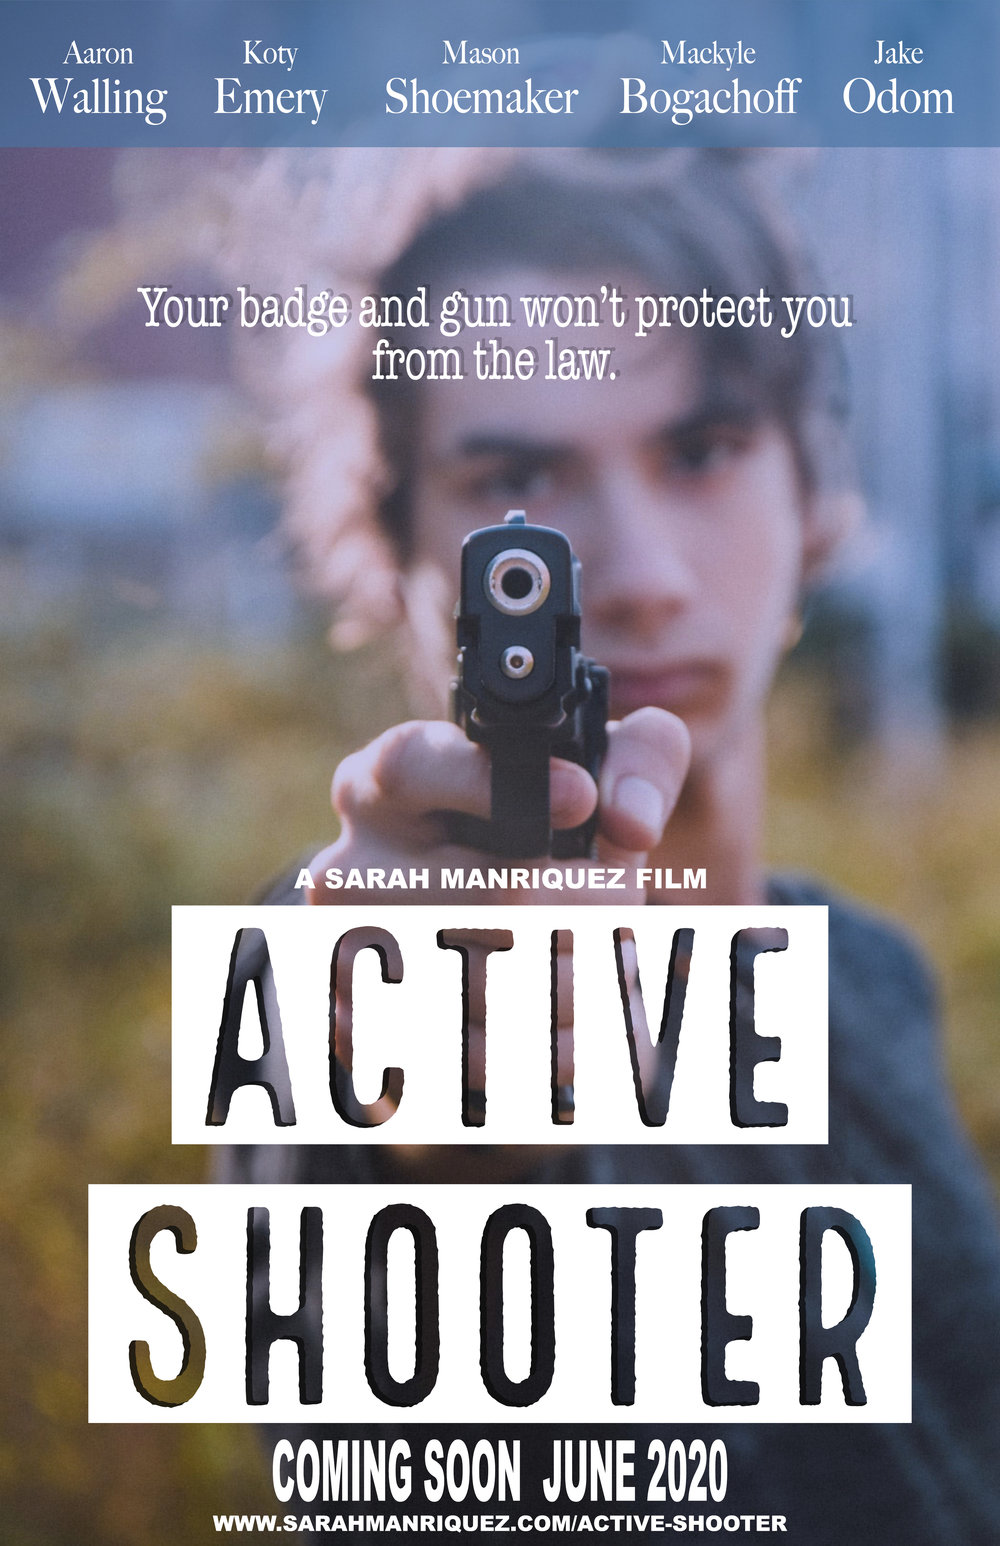 Active Shooter Movie Poster (1).jpg